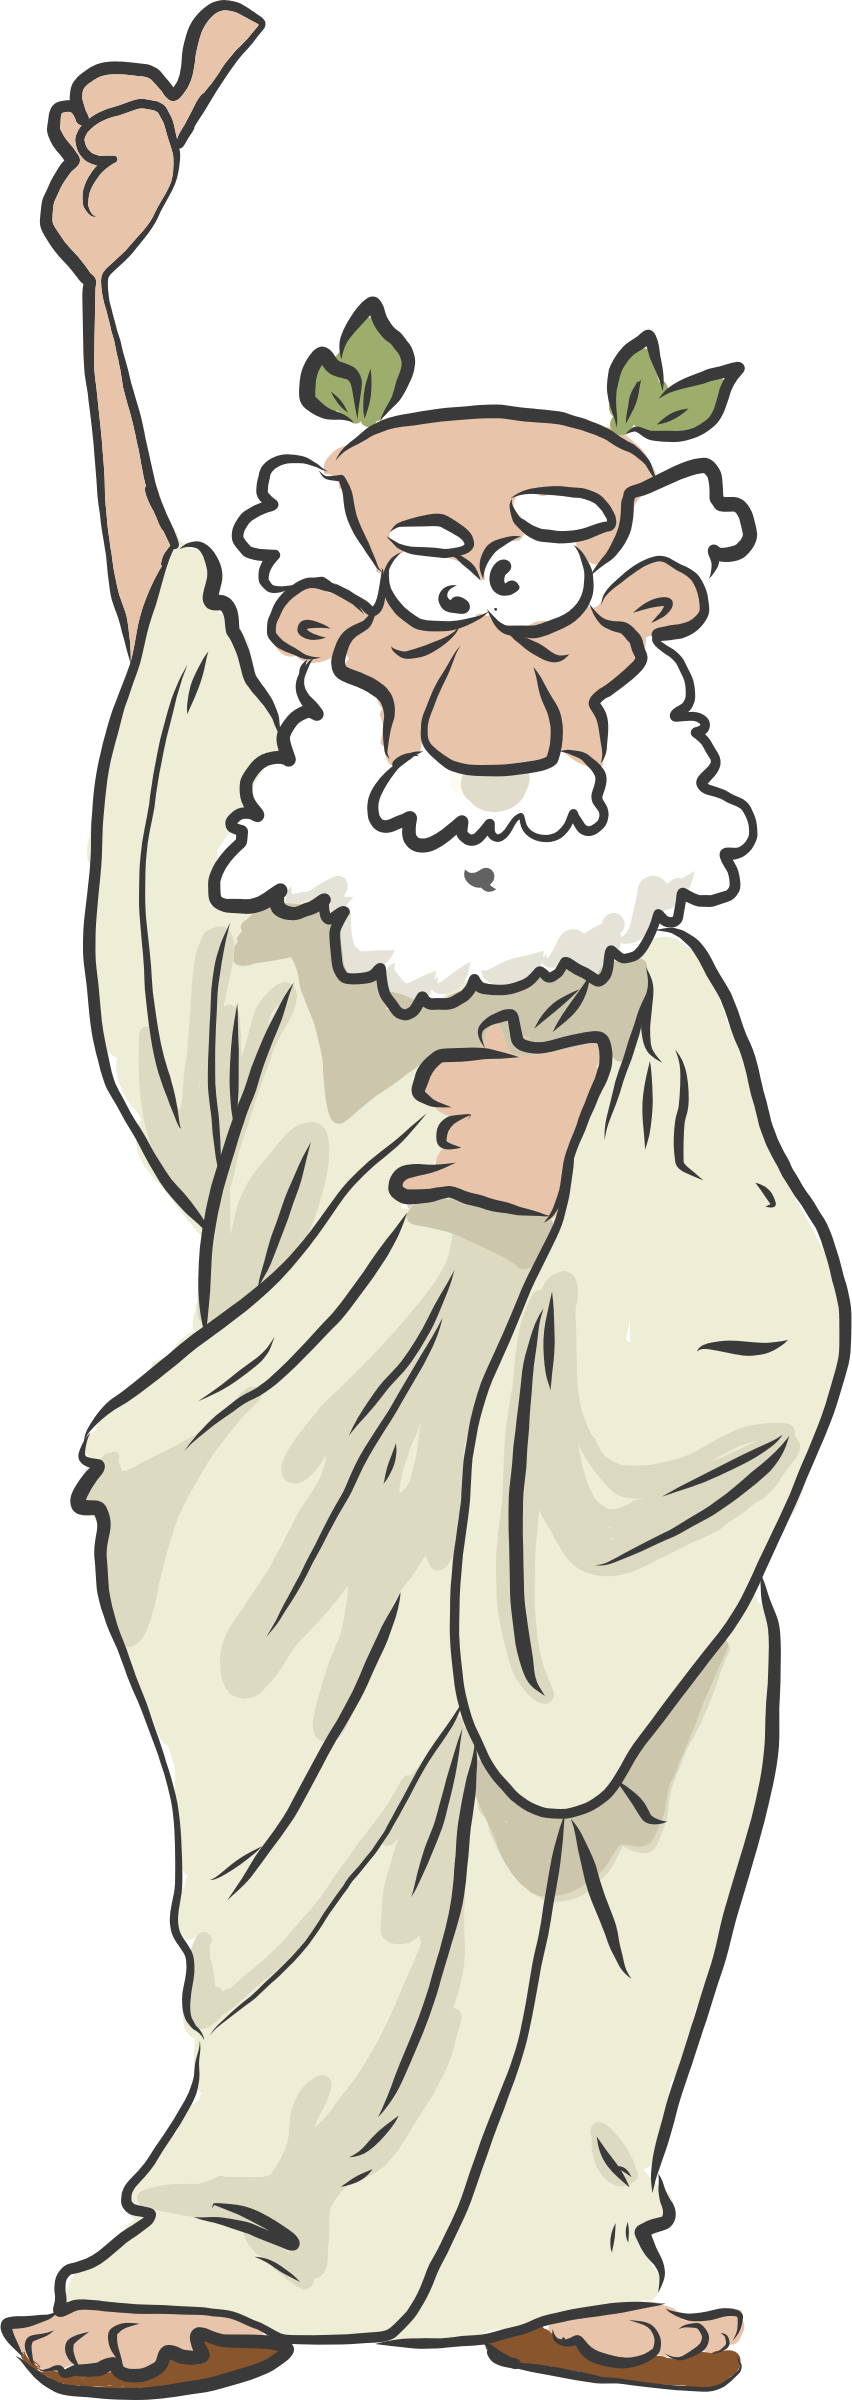 Greek clipart philosopher. Ancient big image png